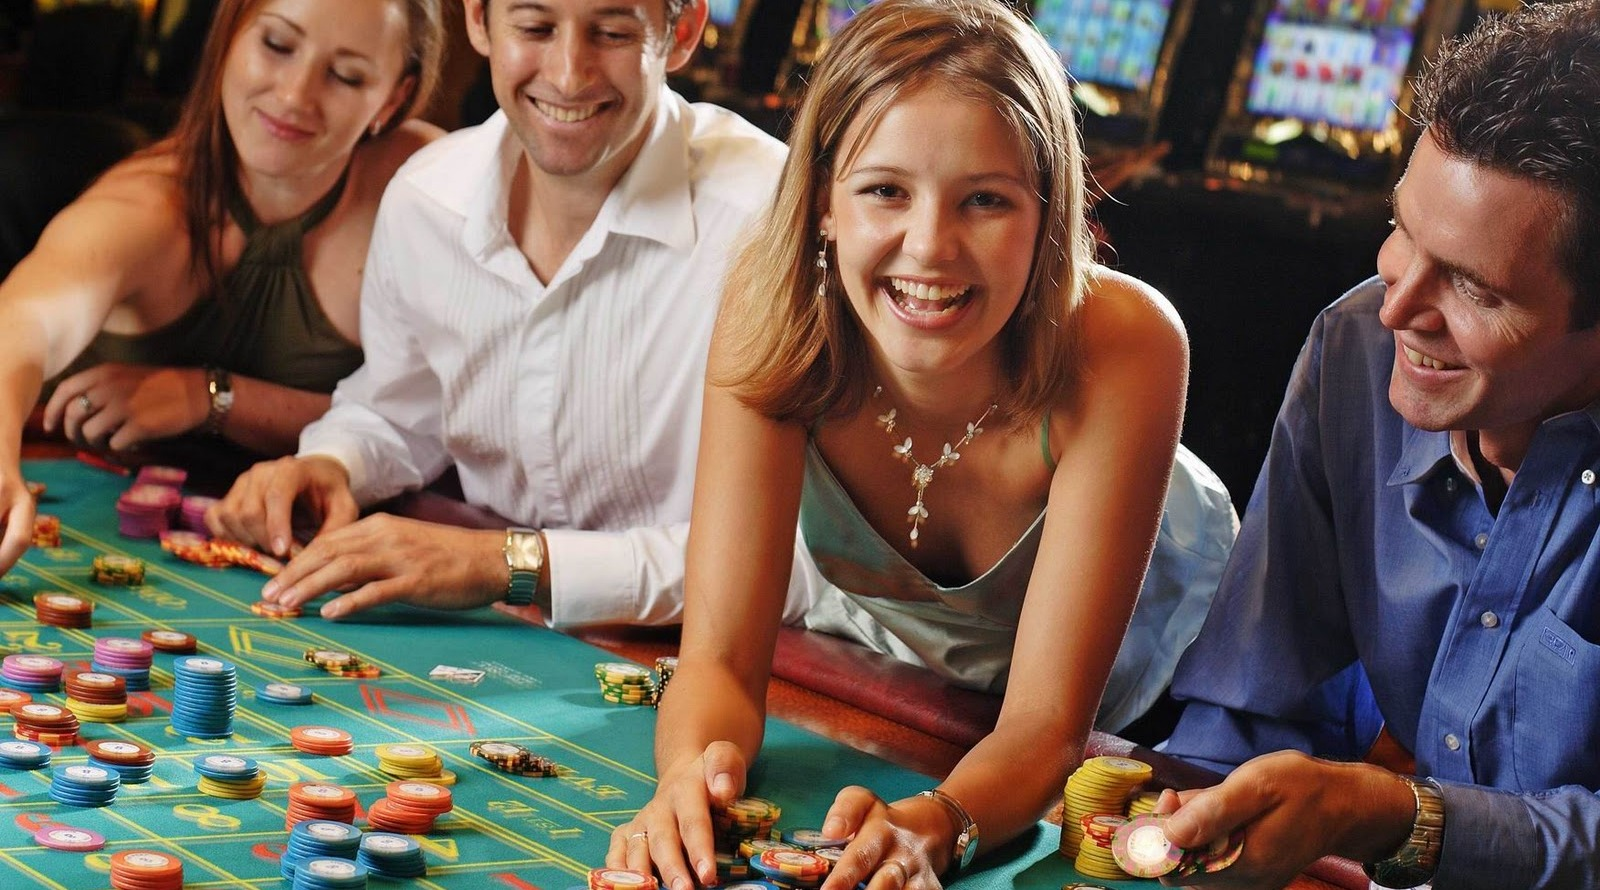 Poker Dealer Services and Poker Dealers for Hire - South Florida